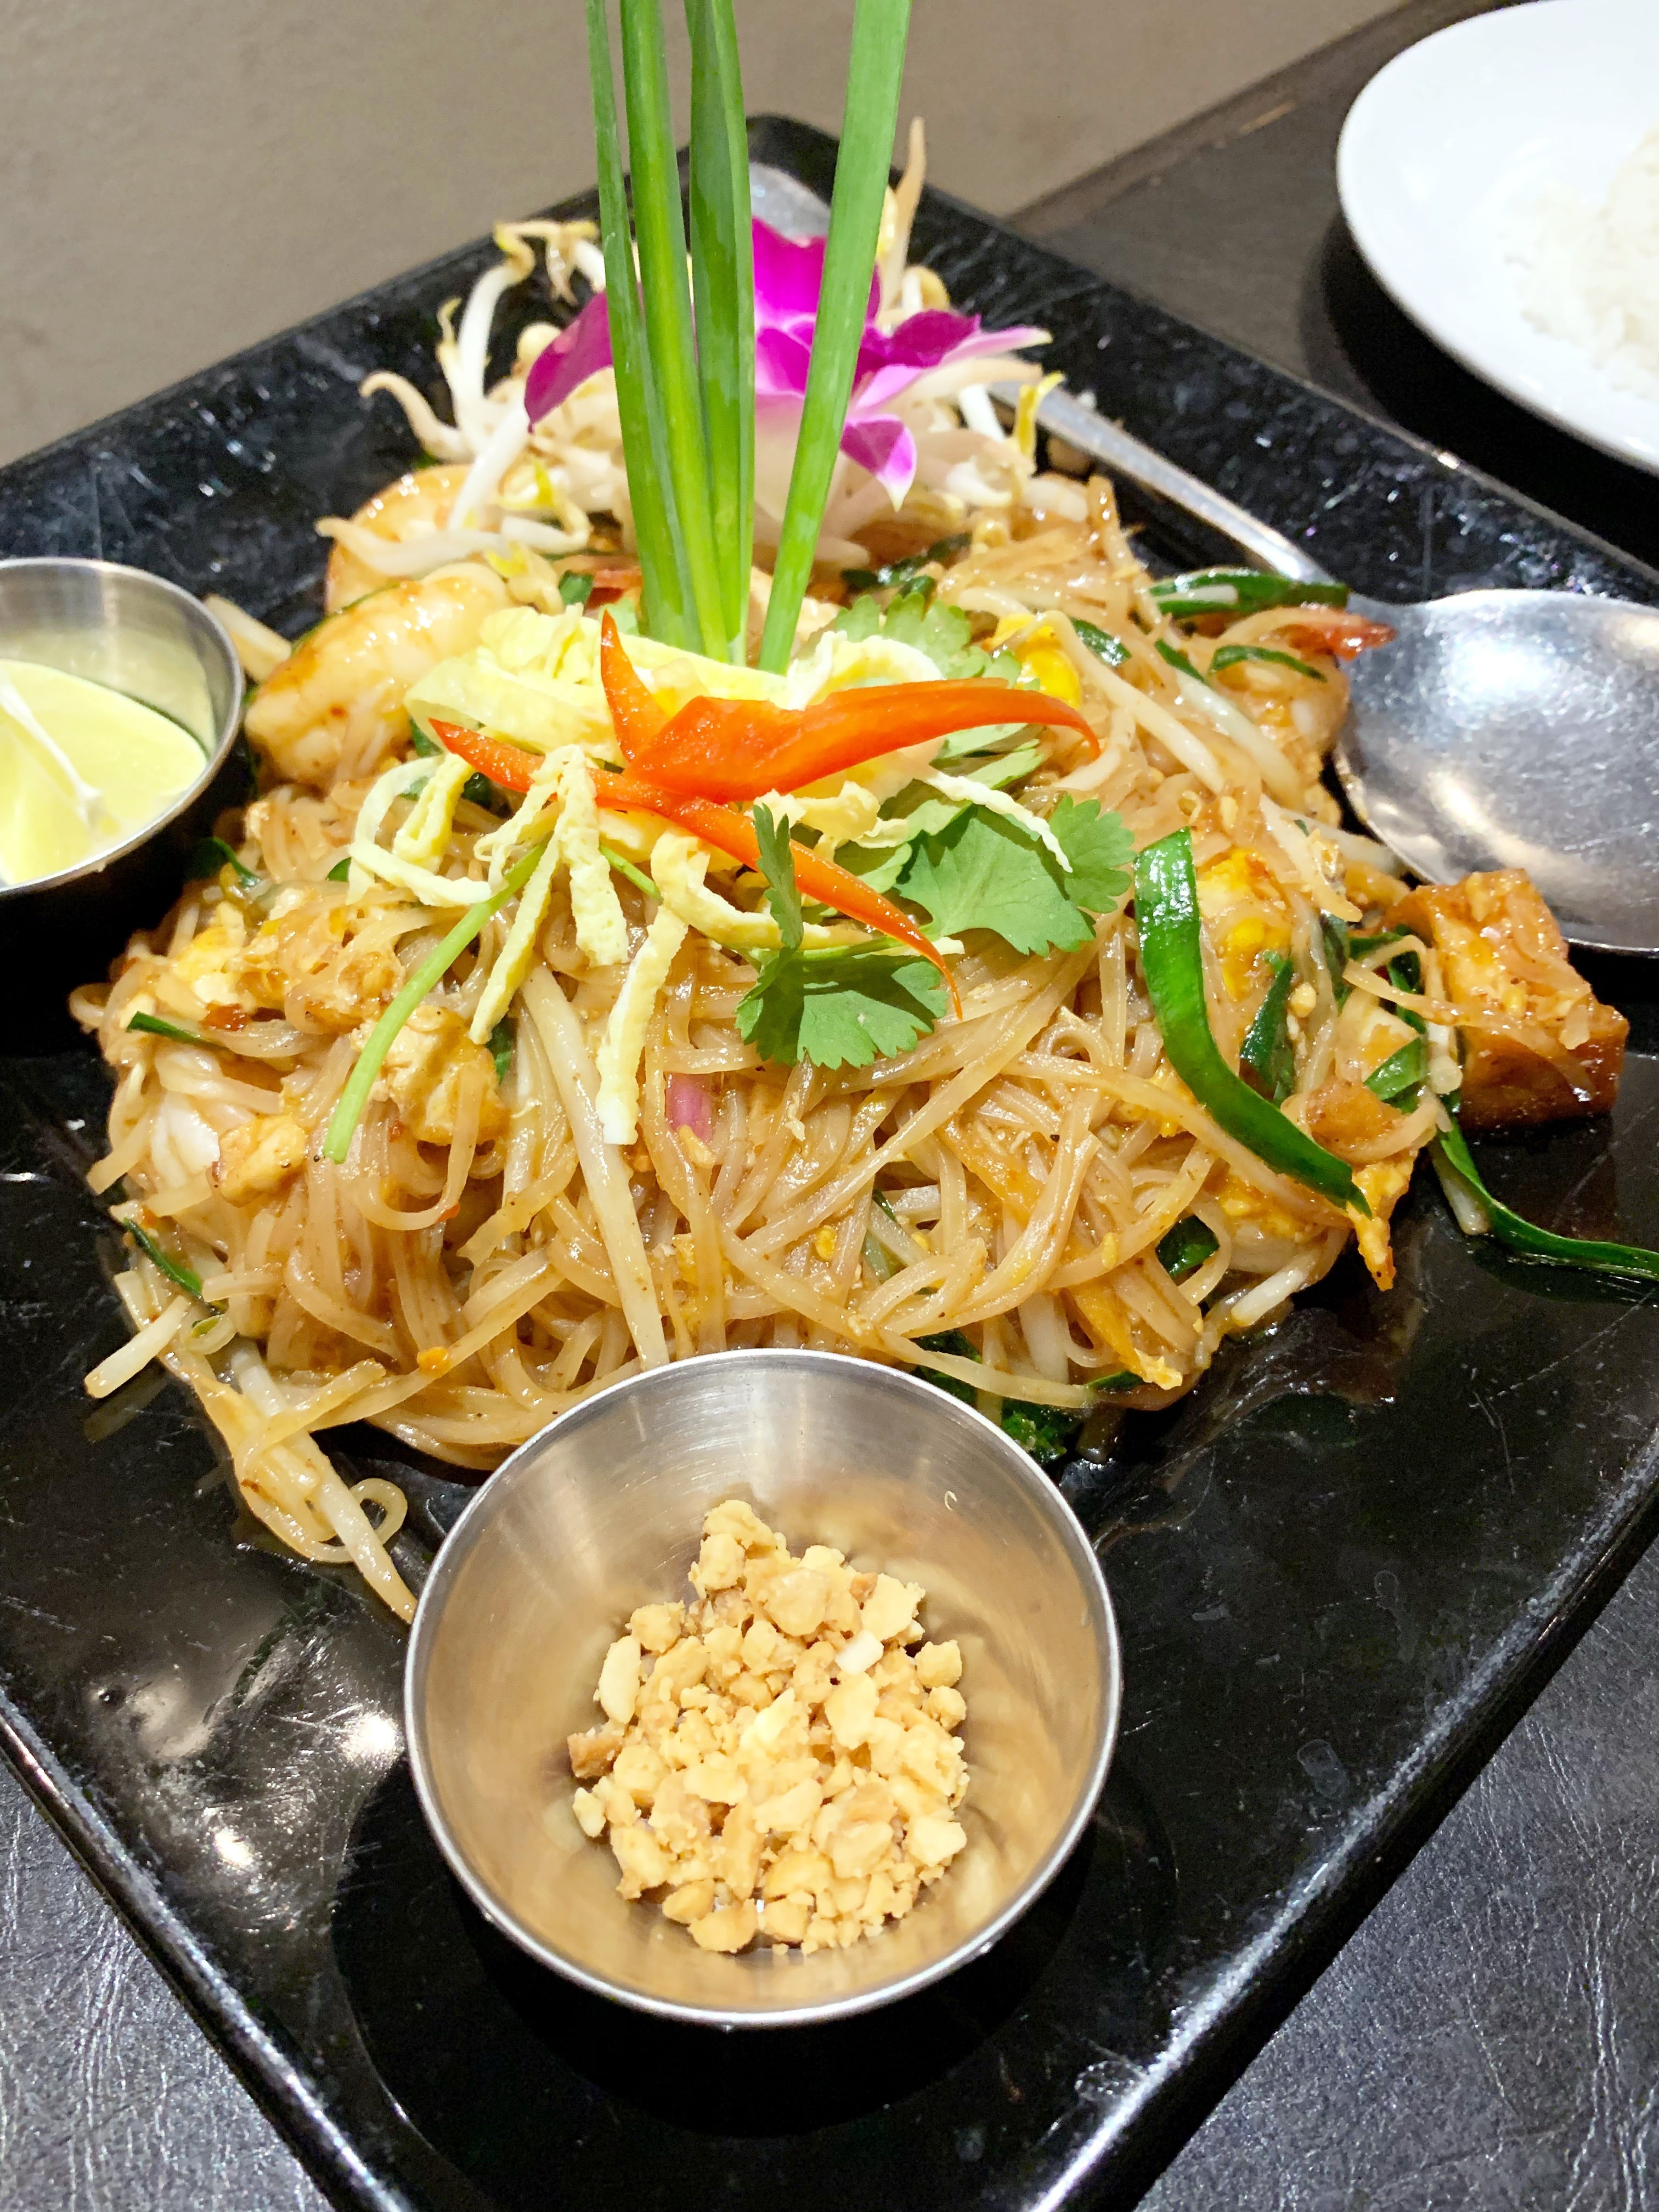 Eating At Noi Thai Cuisine In Honolulu - Where to eat in Honolulu, Hawaii - Noi Thai Cuisine Restaurant - Royal Hawaiian Center - Where to eat on Oahu